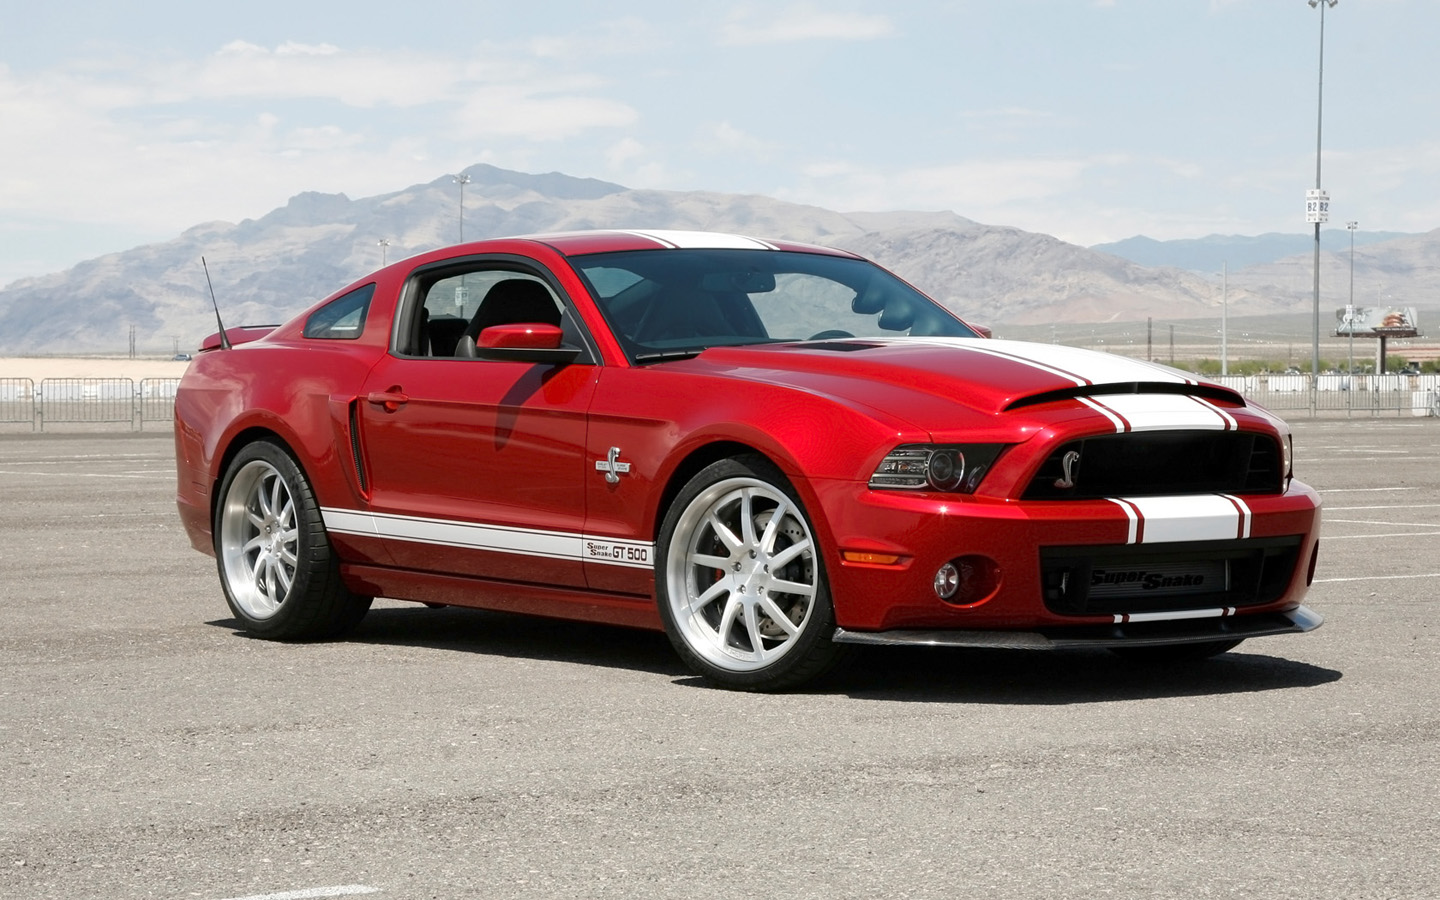 Ford Mustang Shelby GT500 Super Snake photo 131142